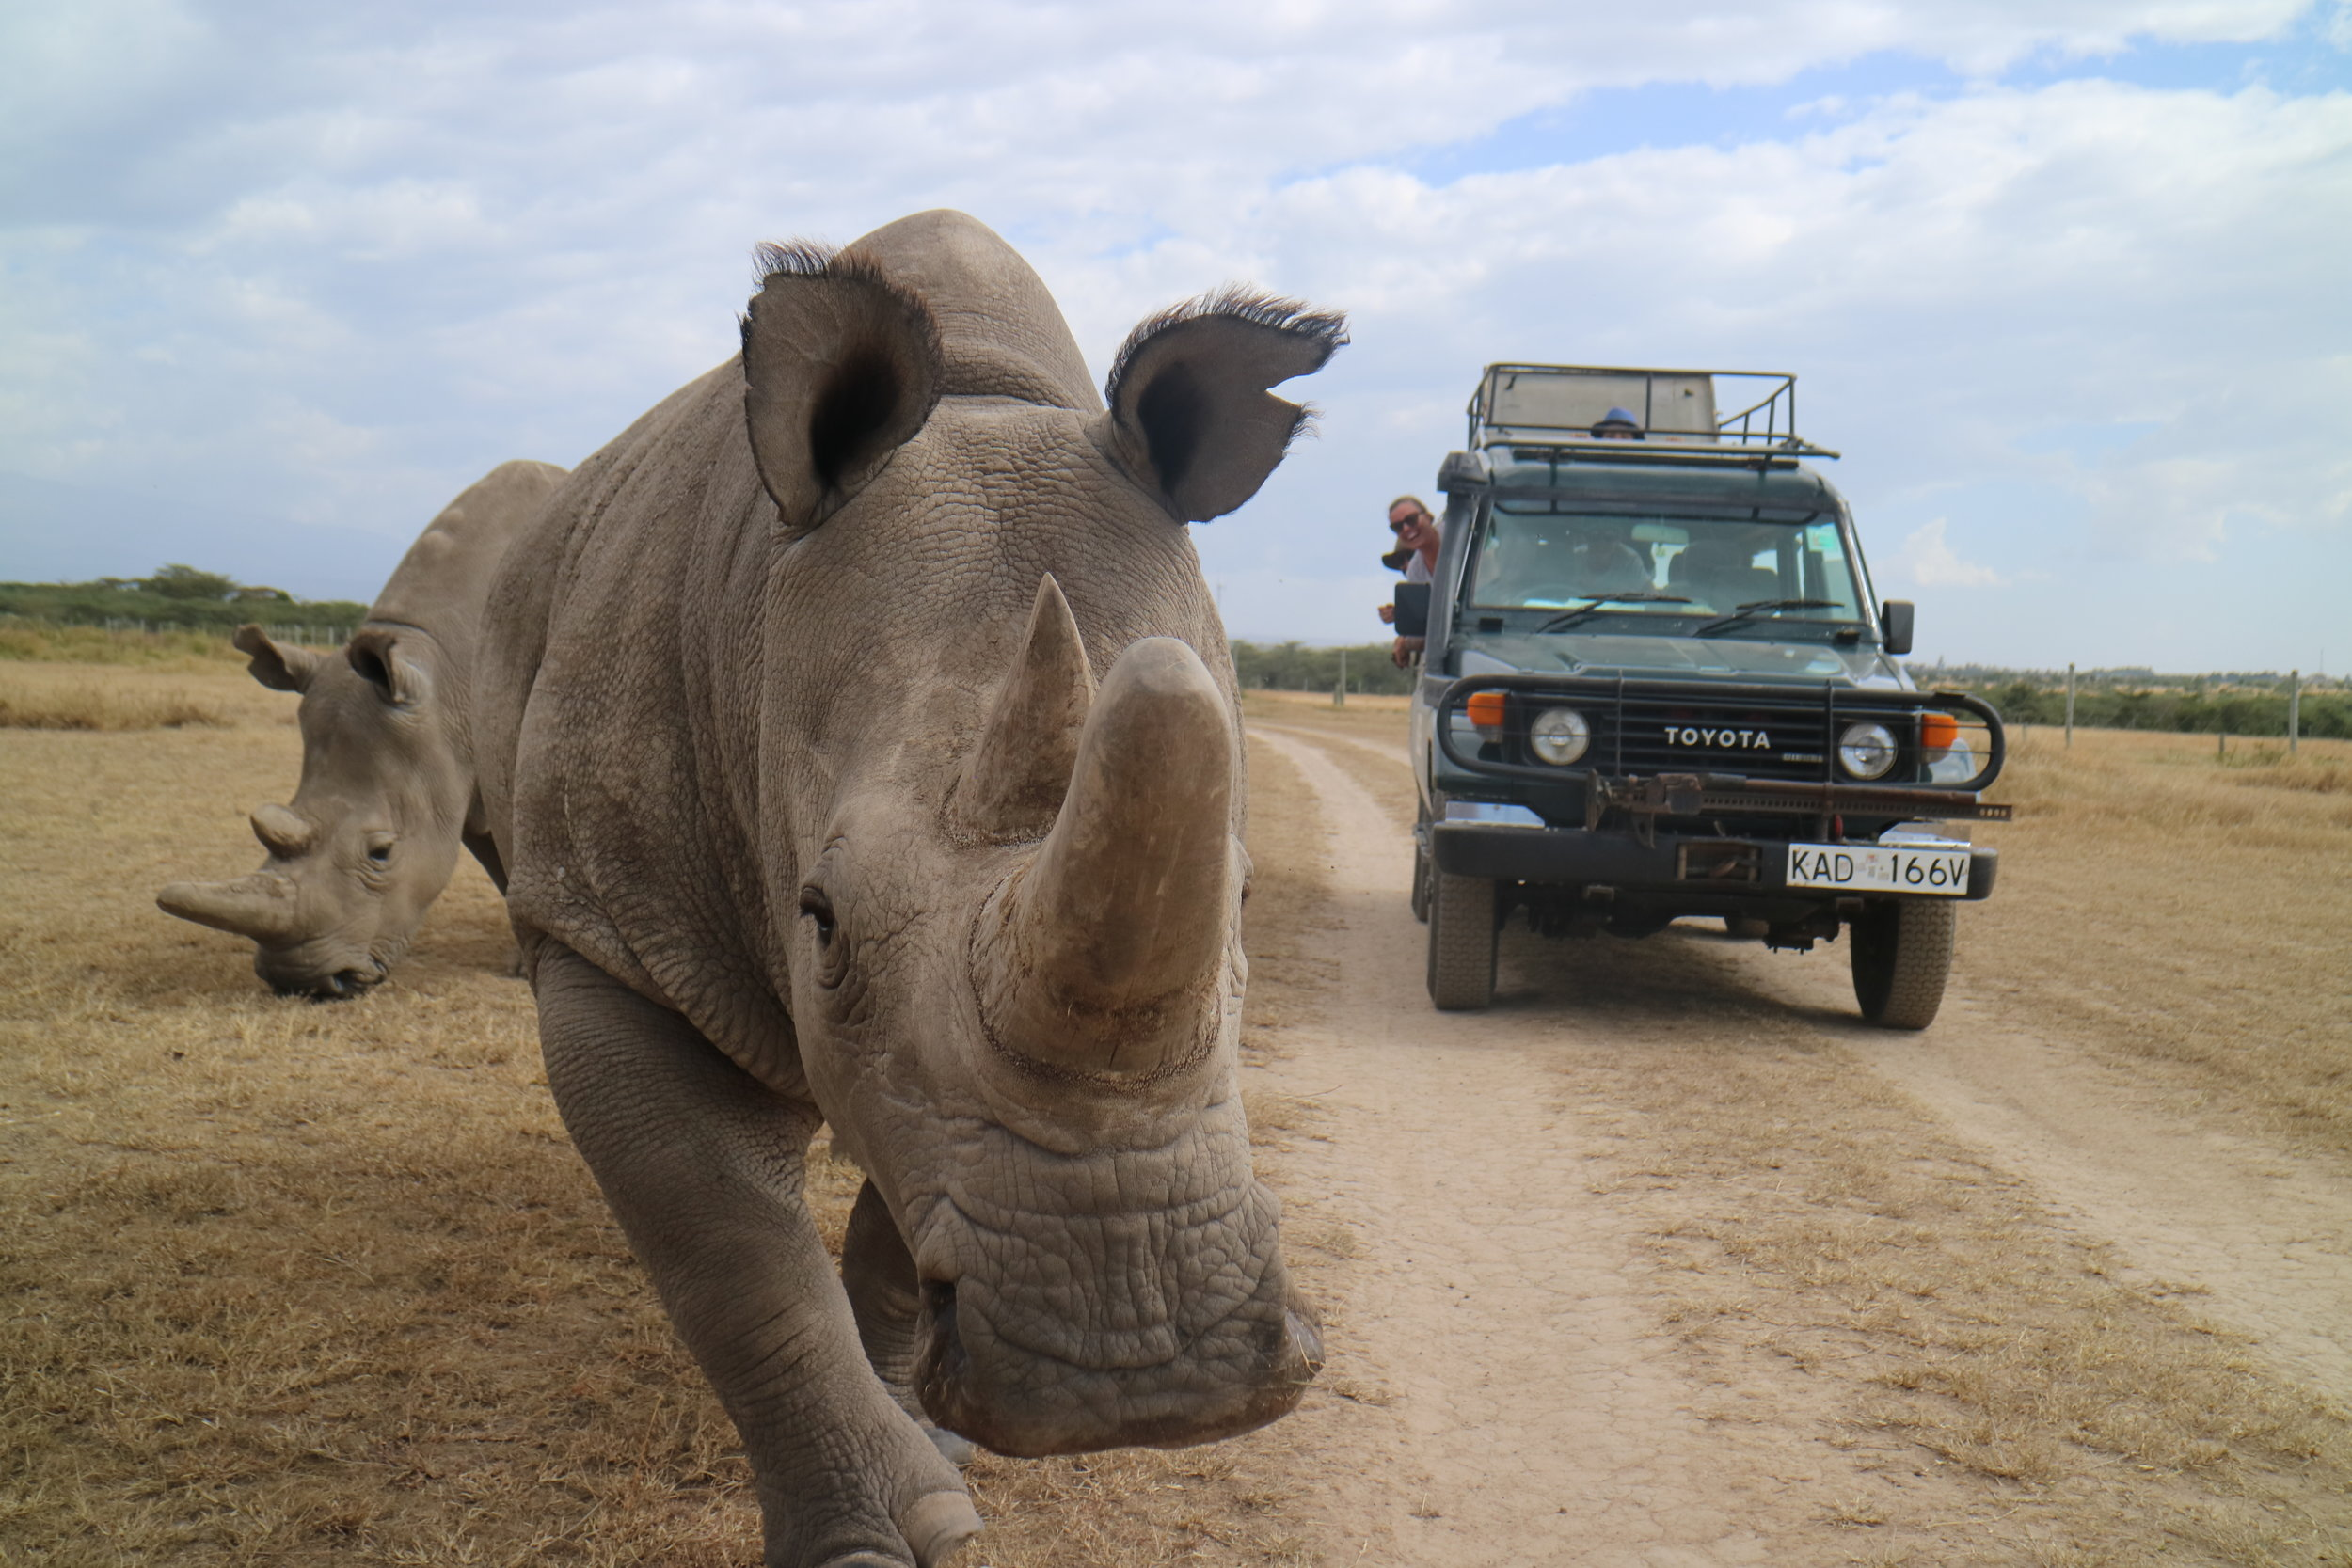 Witnessing the last two Northern White Rhino's in the world